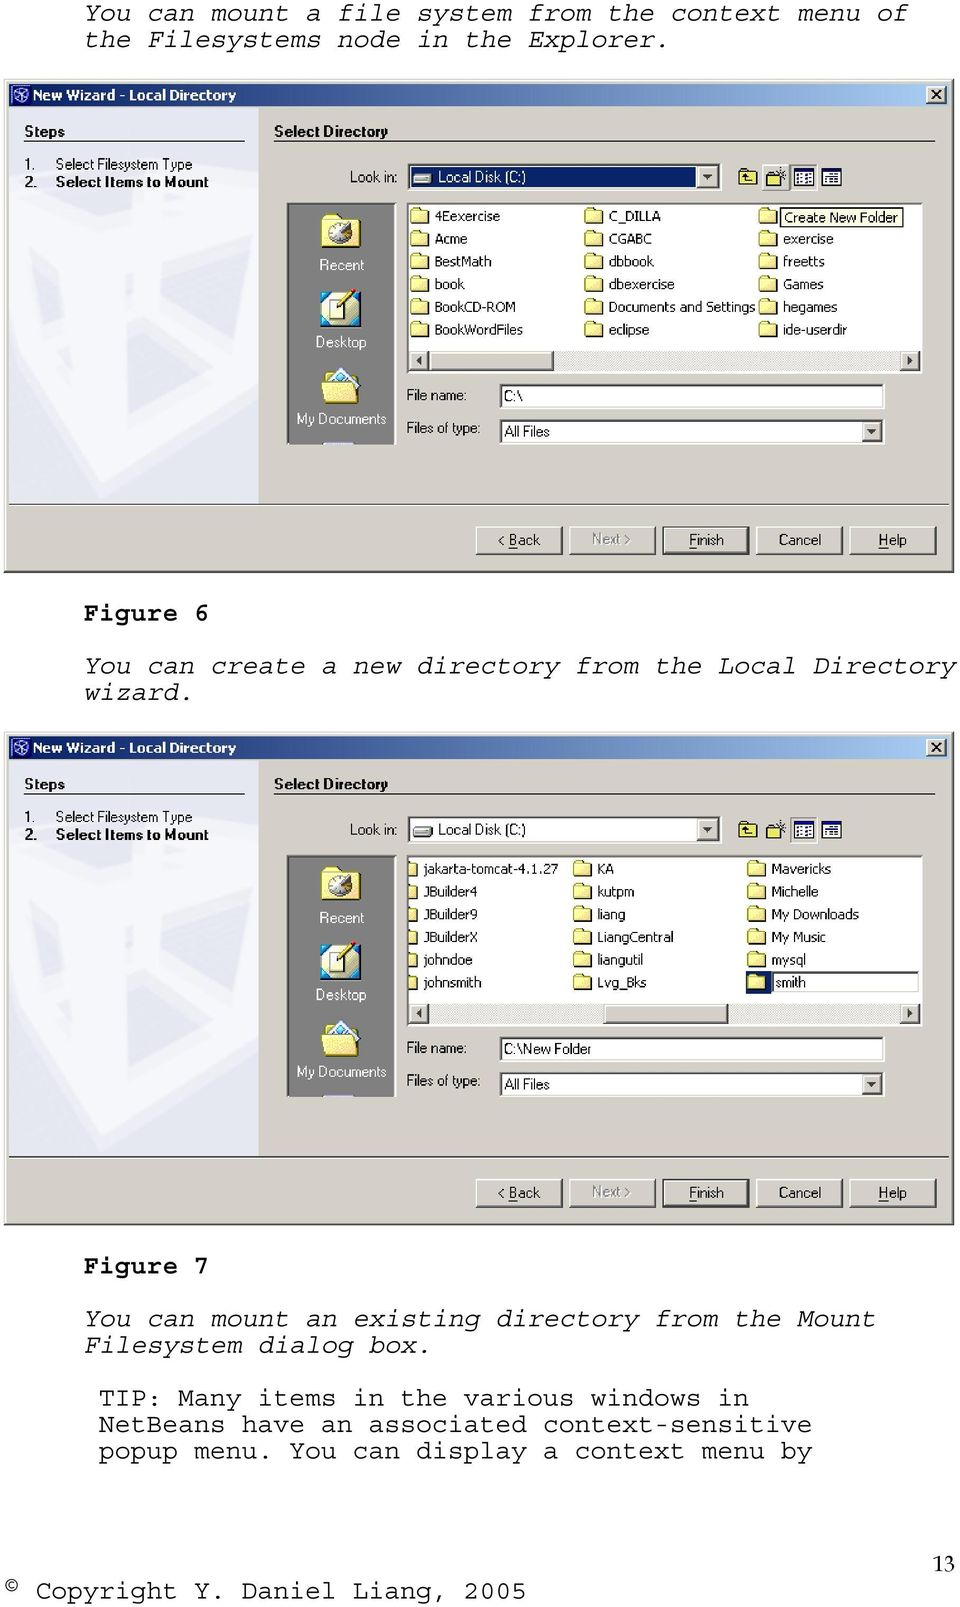 Figure 7 You can mount an existing directory from the Mount Filesystem dialog box.